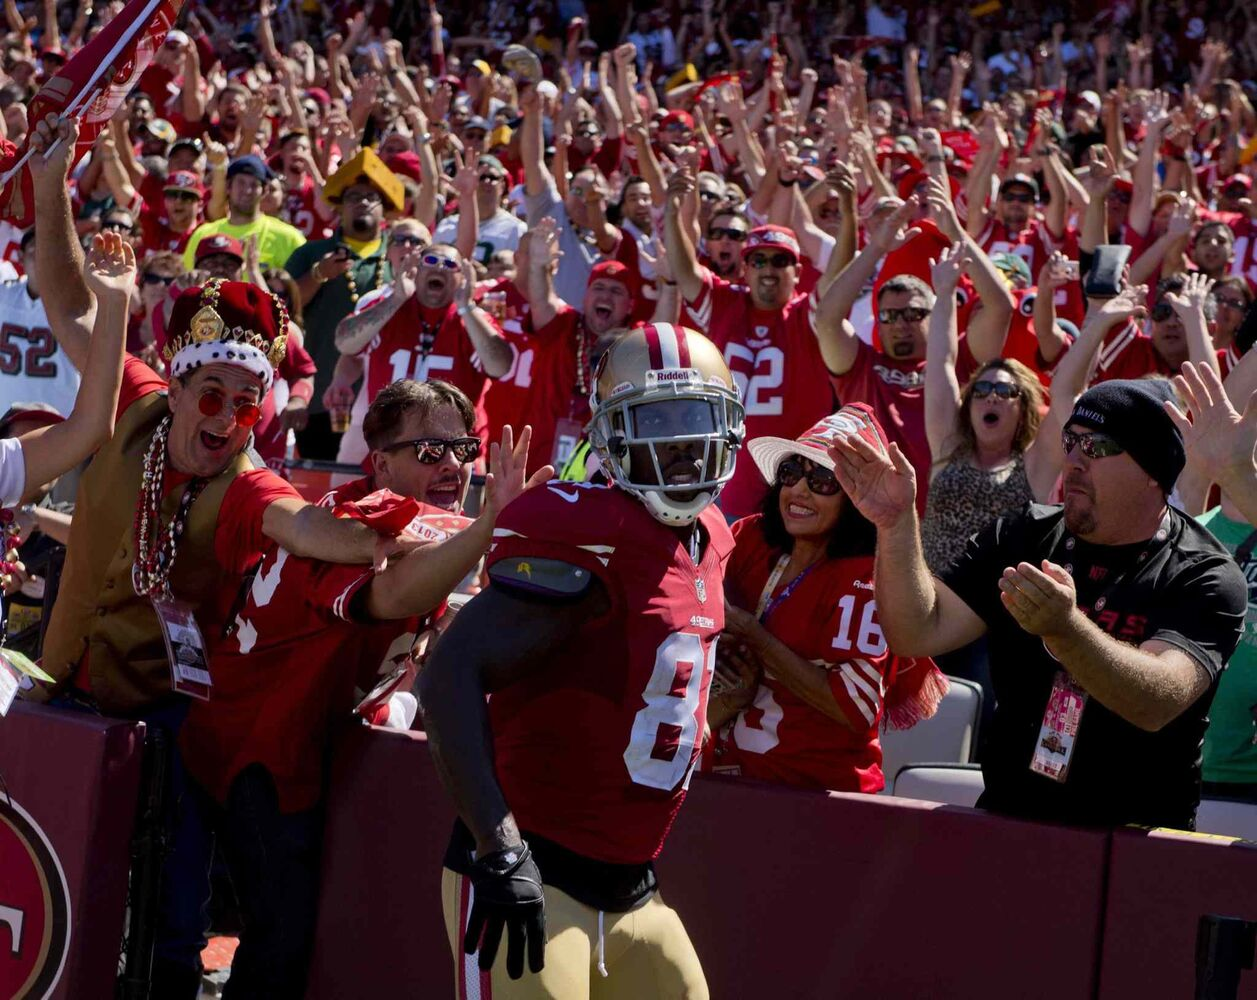 San Francisco 49ers wide receiver Anquan Boldin celebrates with fans after a ten-yard touchdown catch in the second quarter against the Green Bay Packers in September 2013. (Jose Luis Villegas / Sacramento Bee / MCT files)